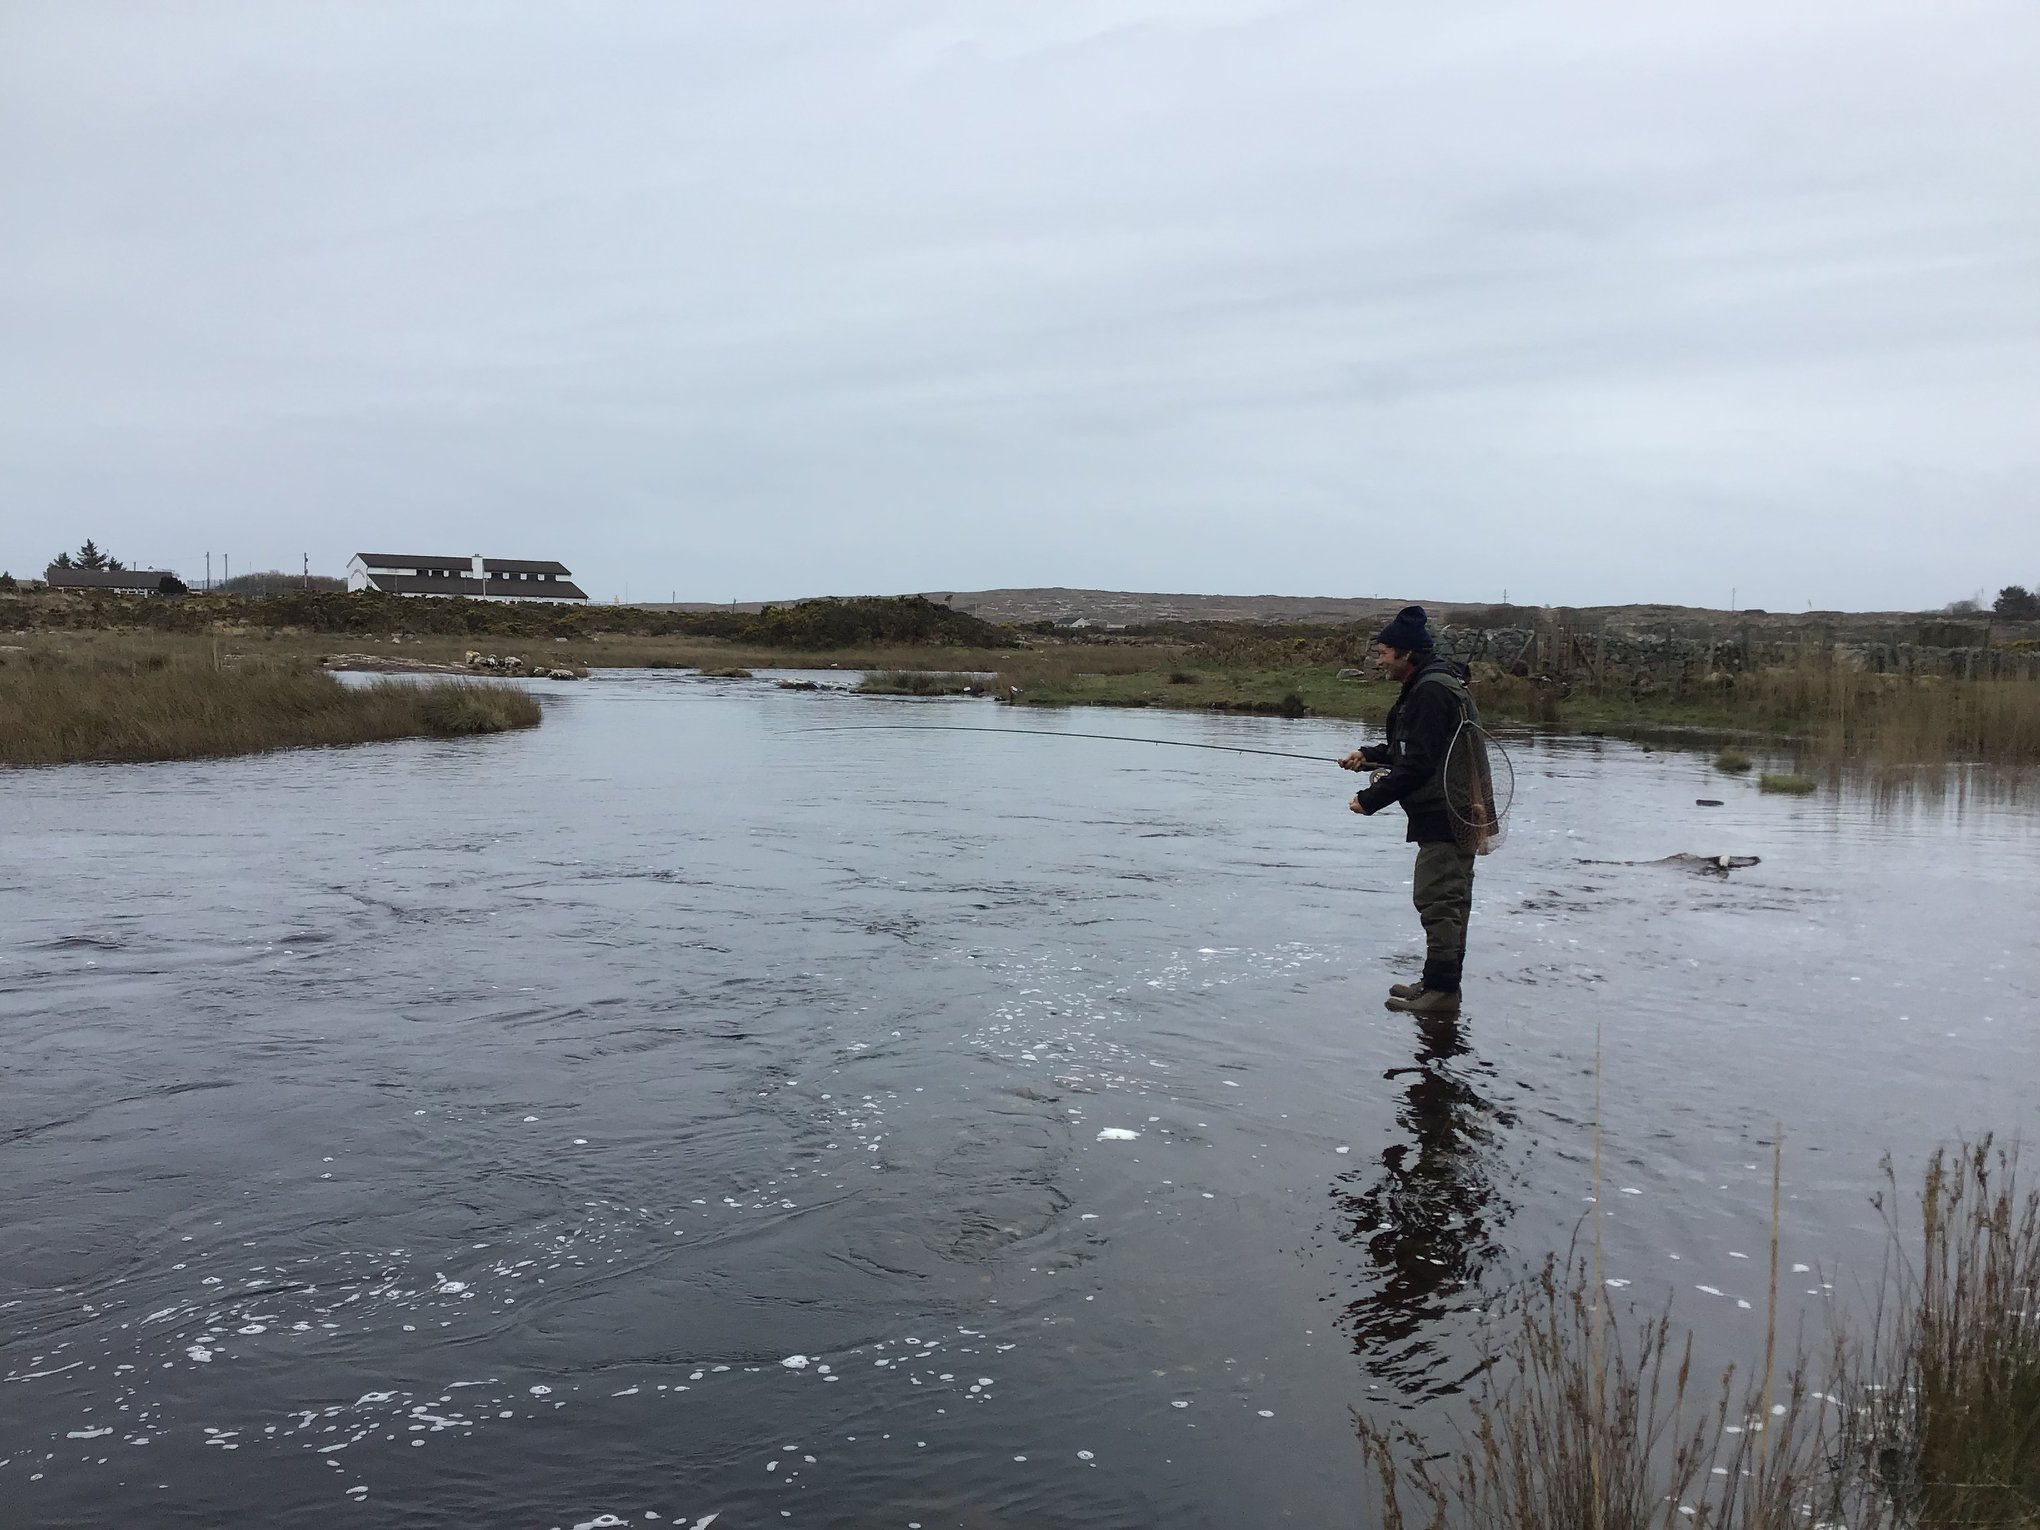 Ireland West Angling River Fishing - Visit Galway